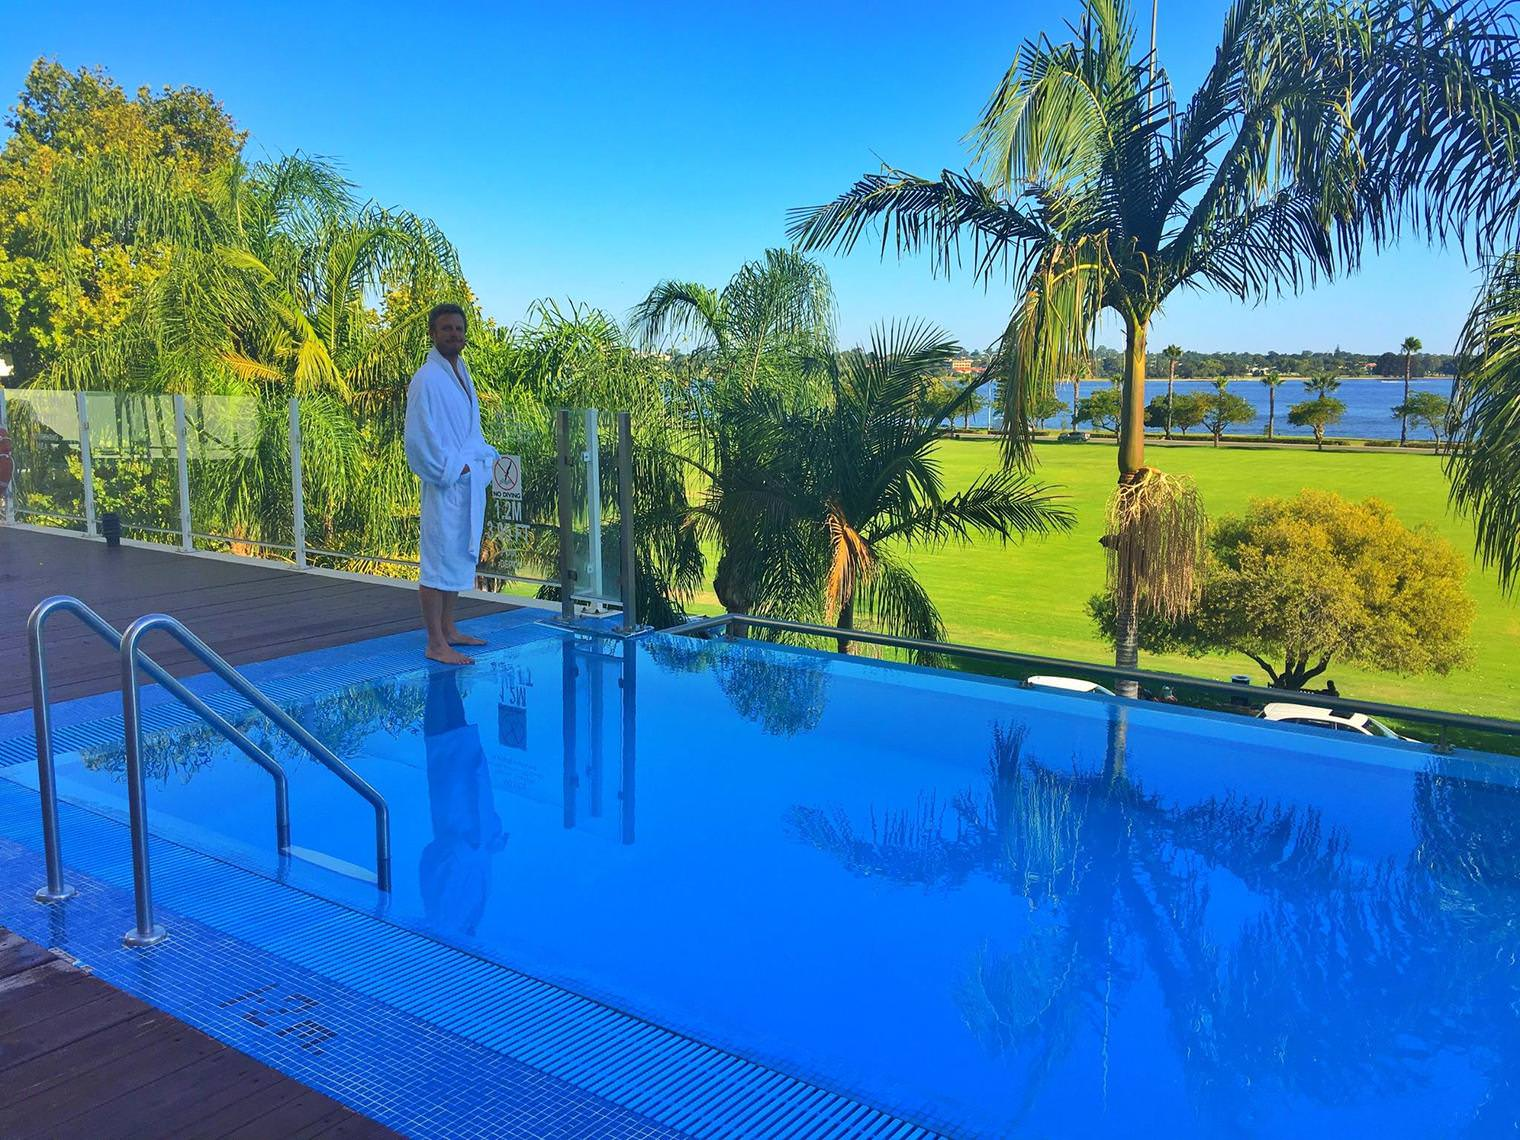 Crowne Plaza Perth A Wonderful Hotel Experience Enhanced by an Expected Reunion Outdoor Pool 1